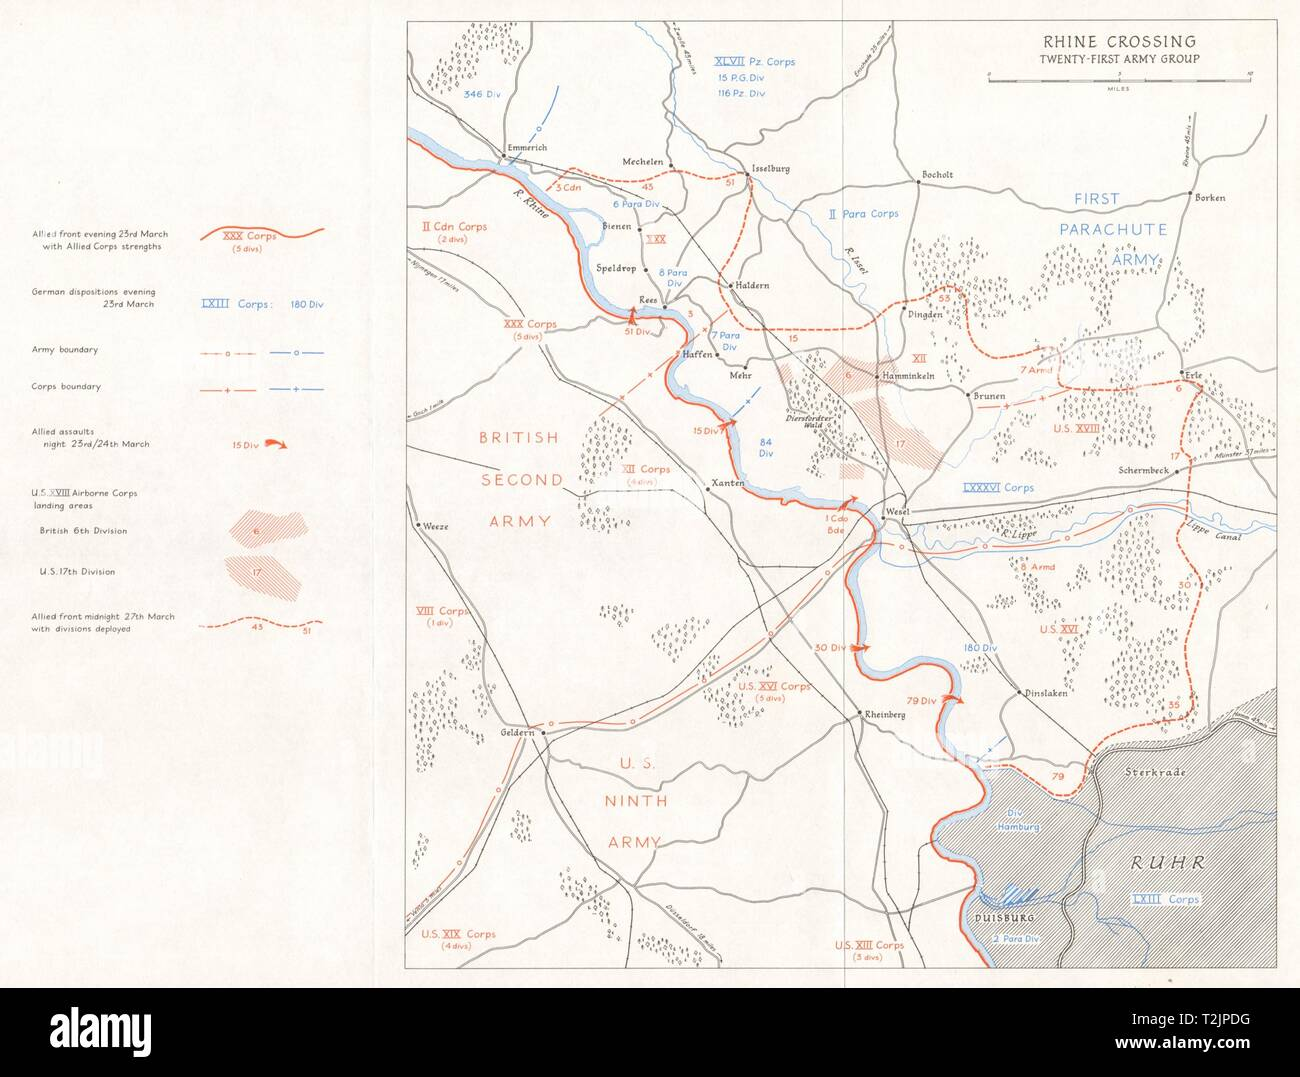 Map Of Germany Ww2.Allies Advance Rhine Crossing 21st Army Group March 1945 Germany